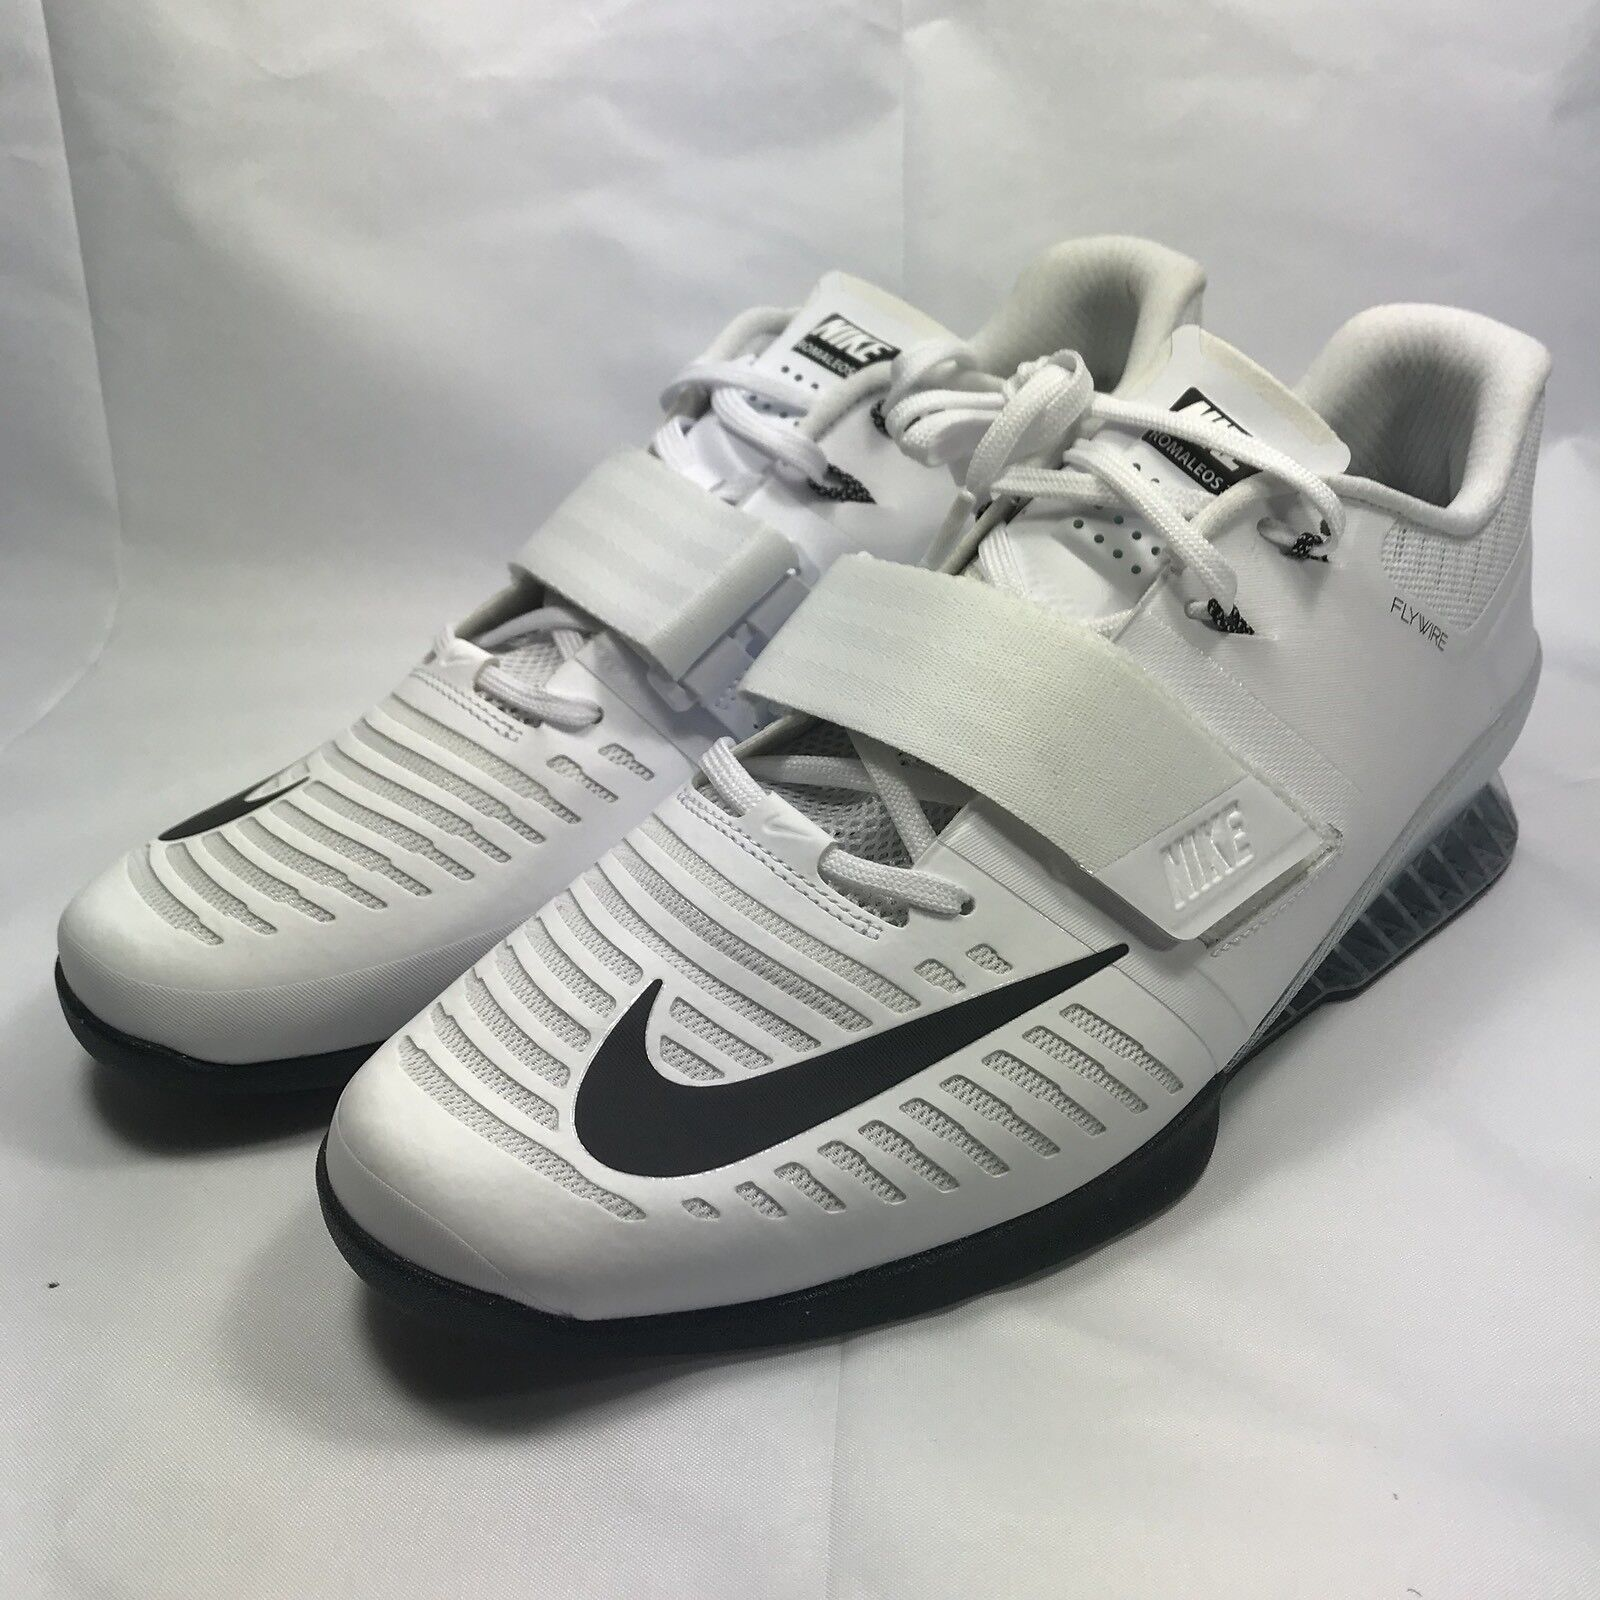 Nike Romaleos 3 Weightlifting Shoes White Volt Black 852933-100 - Men's 14 - New Brand discount